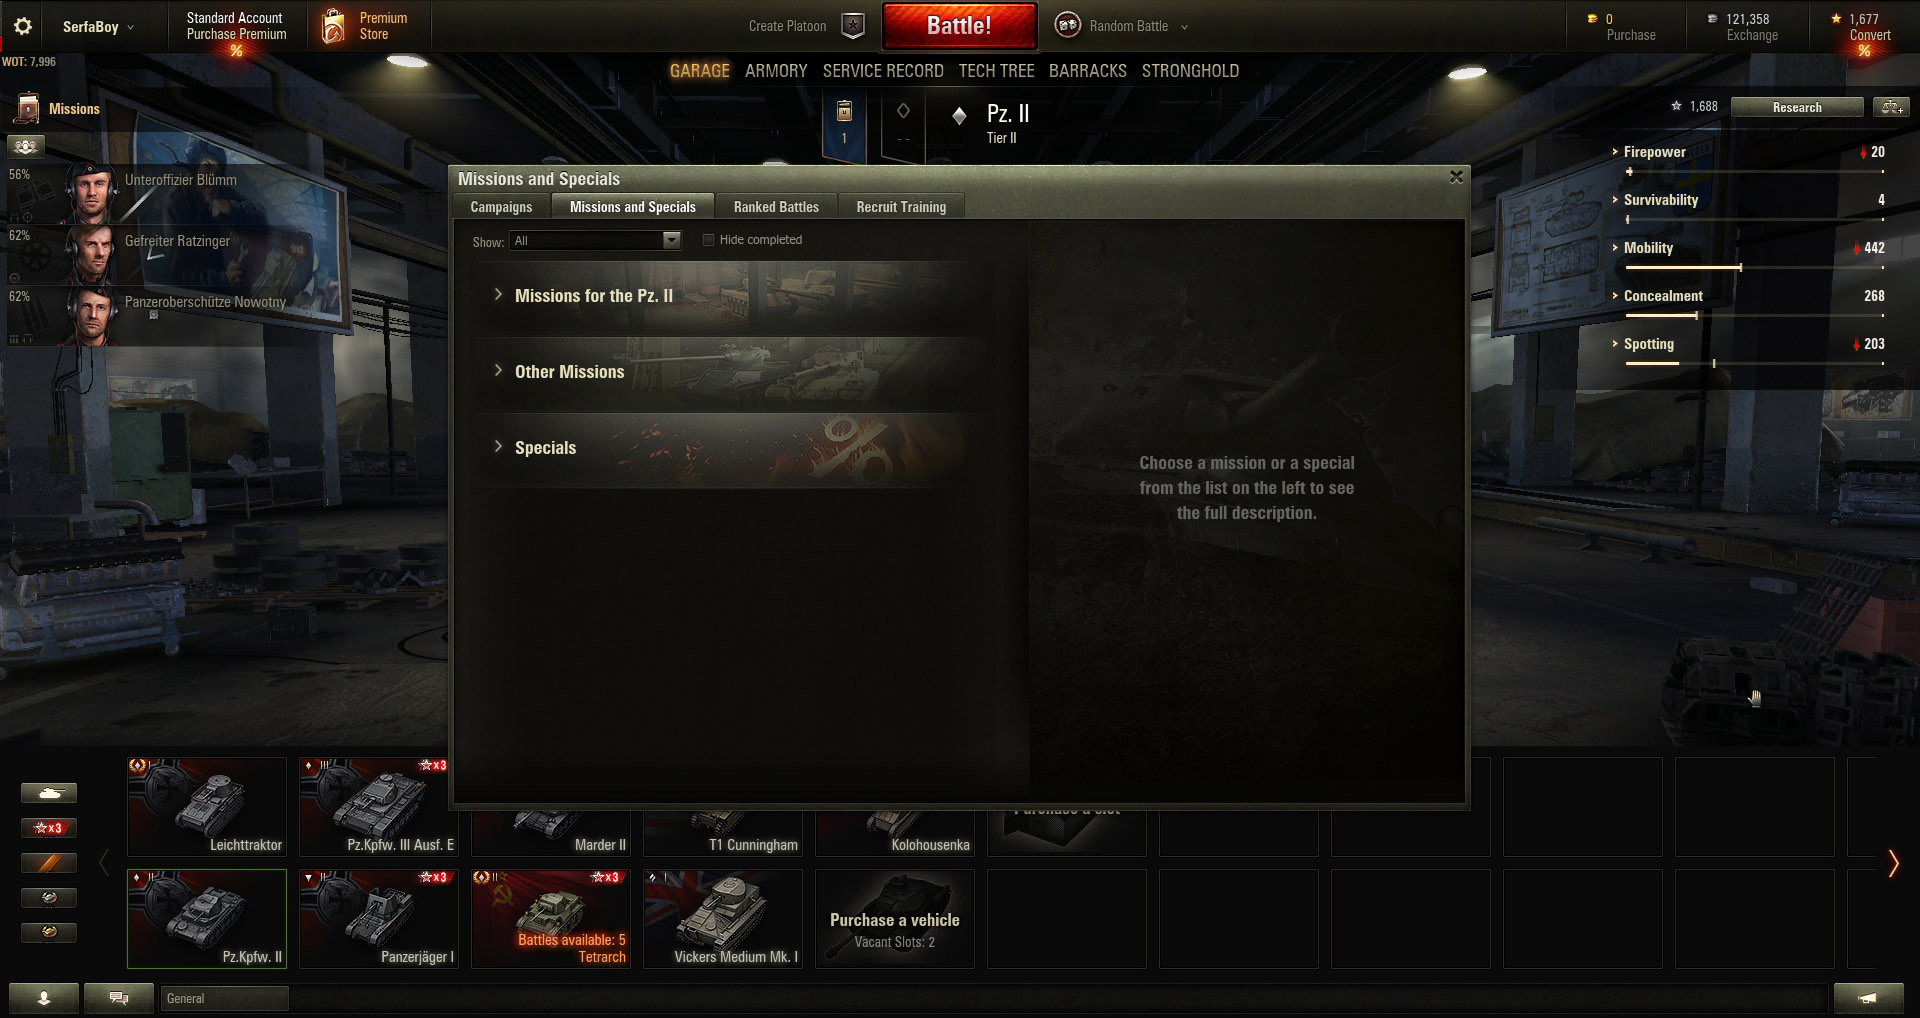 Under the Missions and Specials tab you will find Missions for the selected tank, Other Missions, and Specials.